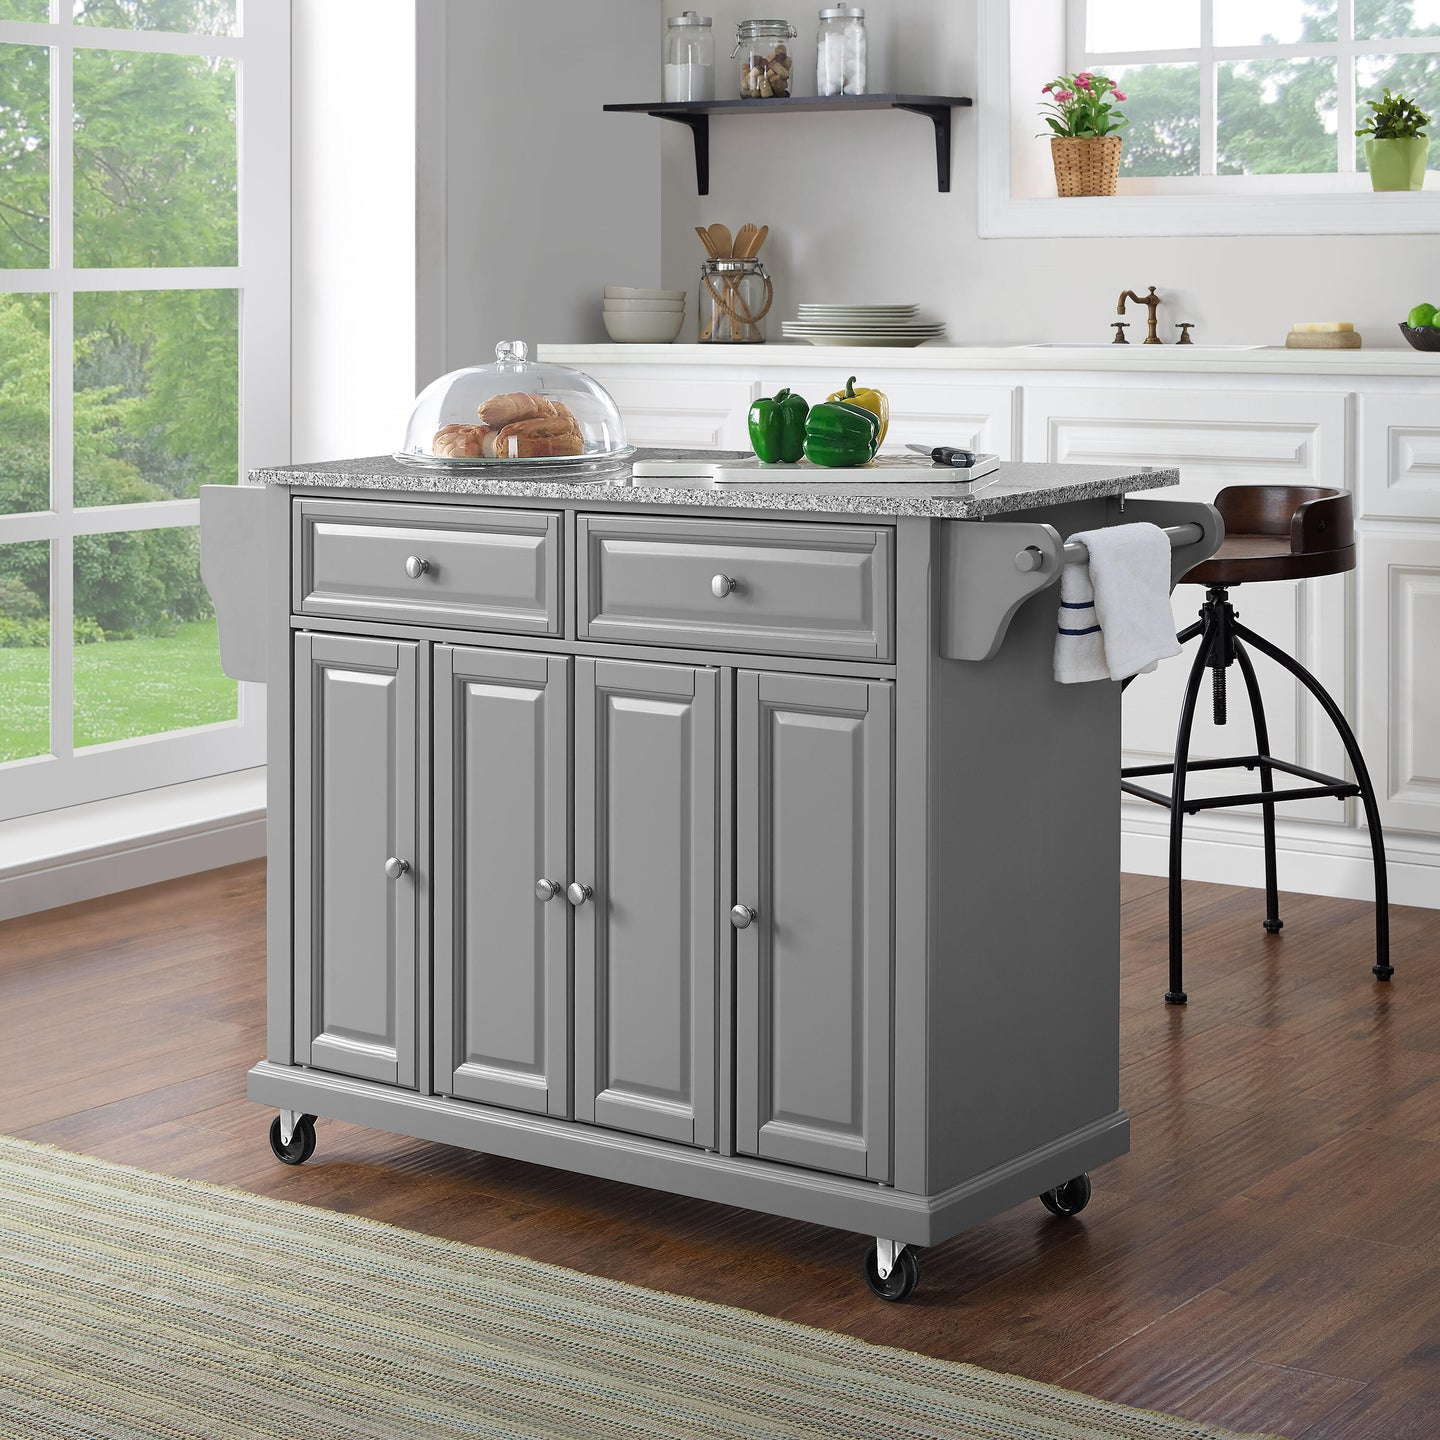 Full Size Grey Kitchen Cart with Solid Granite Top Sturdy Casters - Kitchen Furniture Company